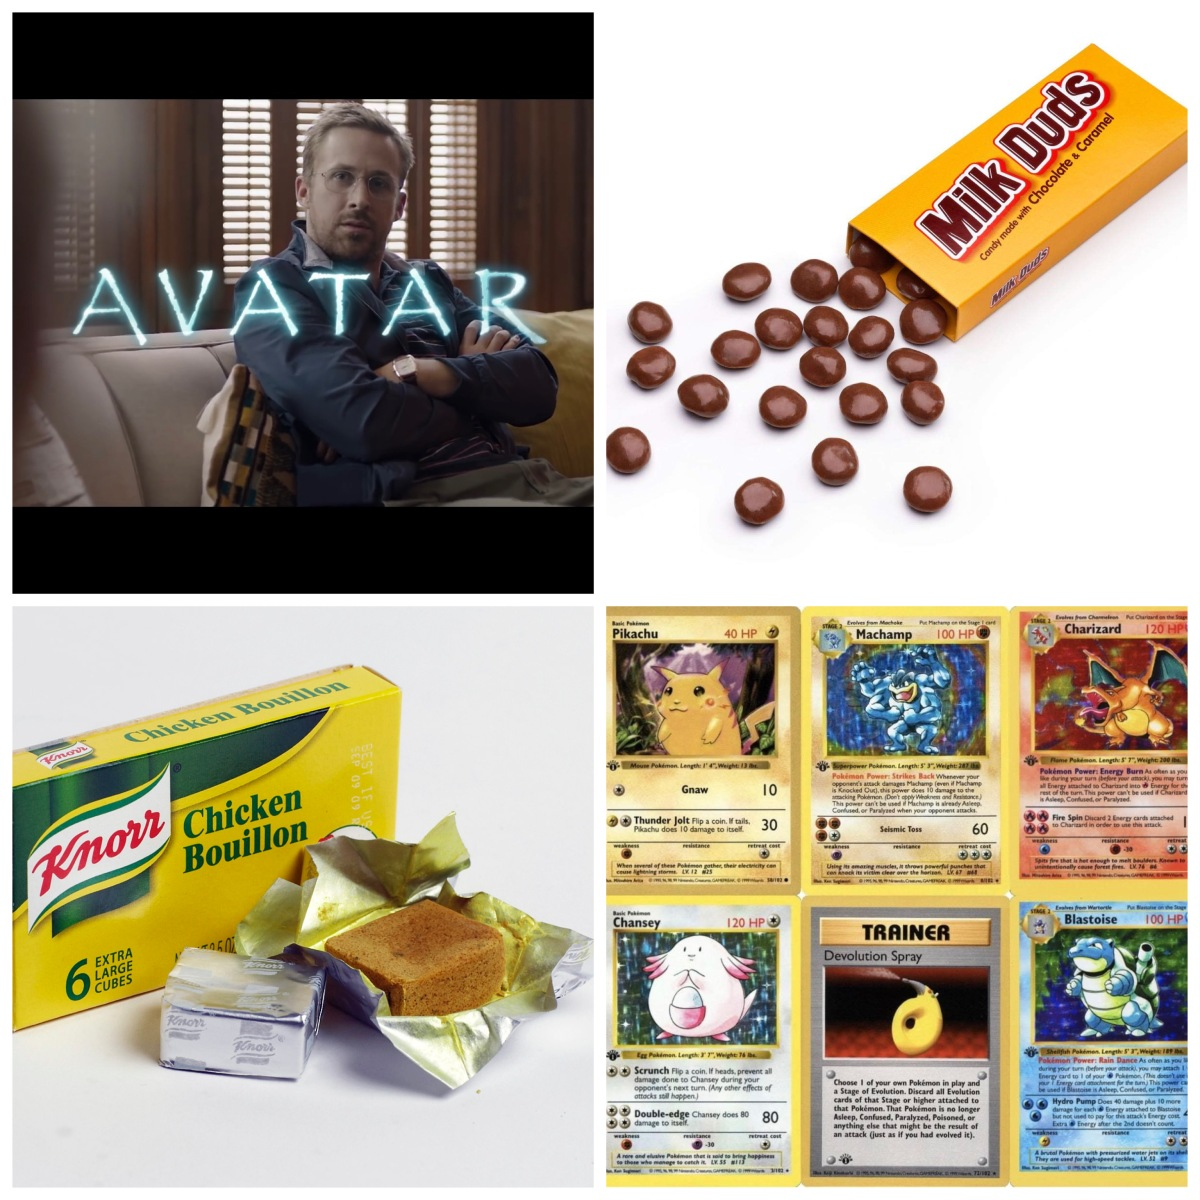 Ryan Gosling in the Avatar Papyrus SNL sketch, Milk Duds, bouillon cubes, and Pokemon cards.